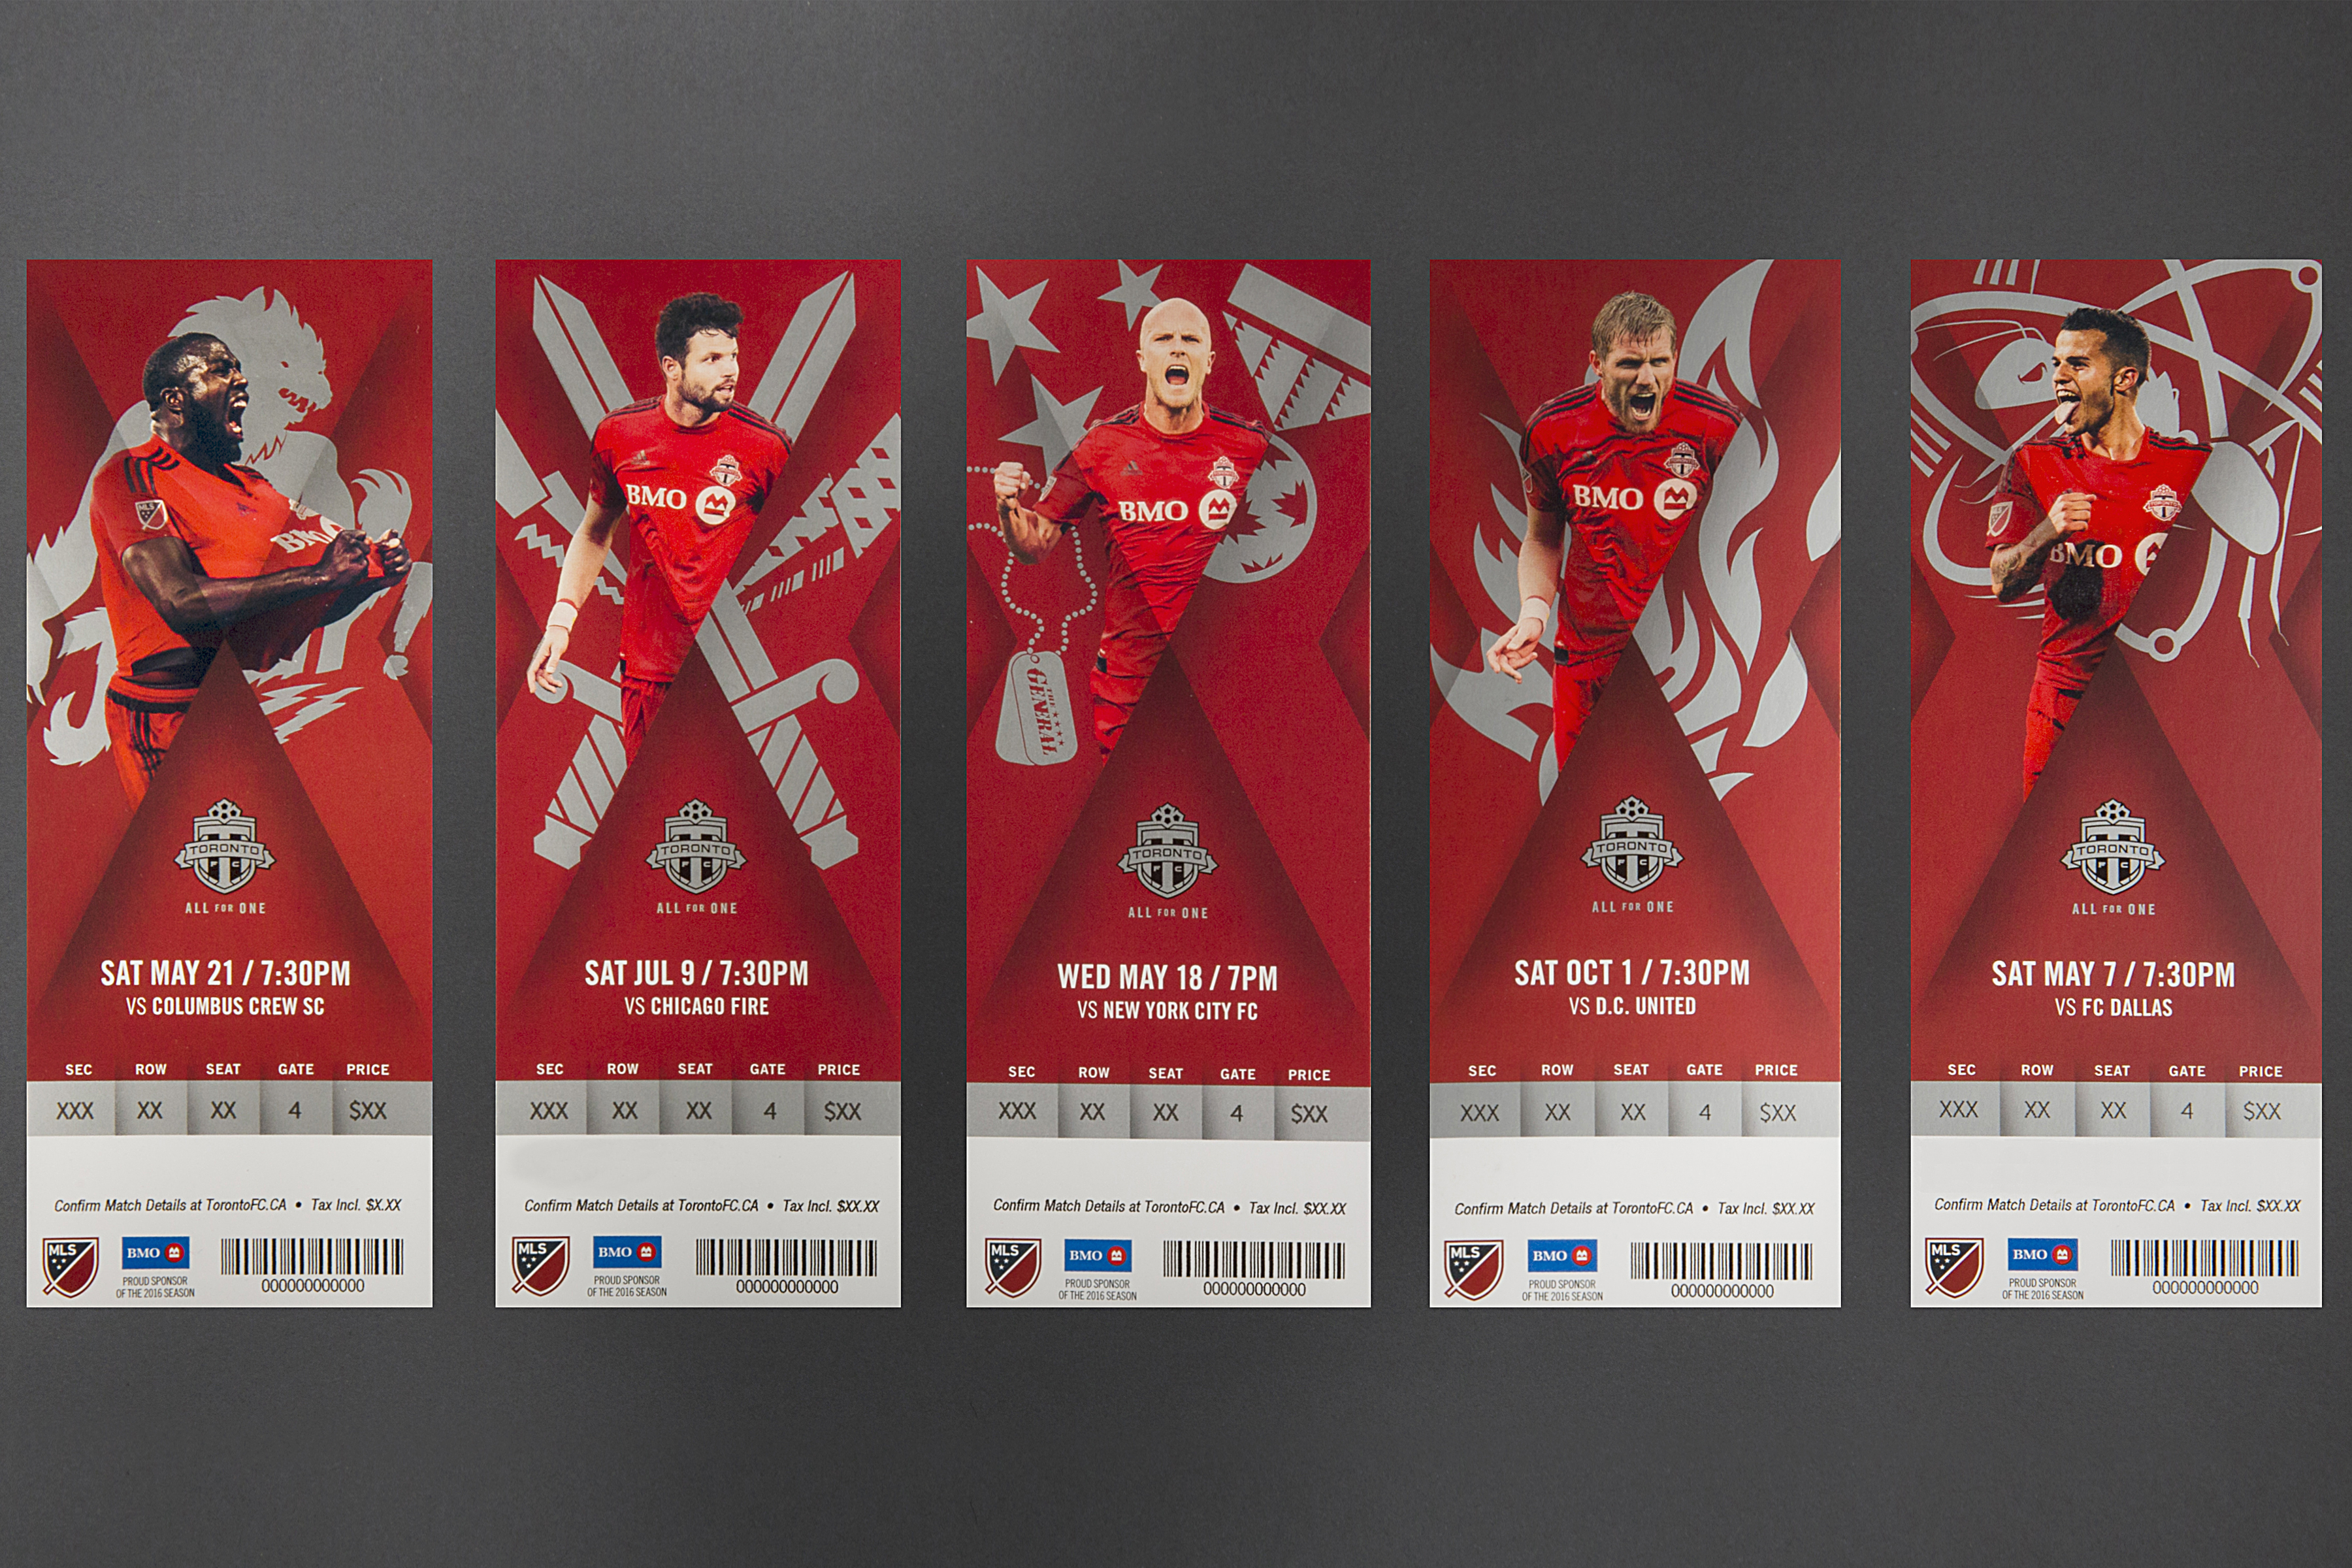 Thumbnail for Toronto FC 2016 Season Ticket Package